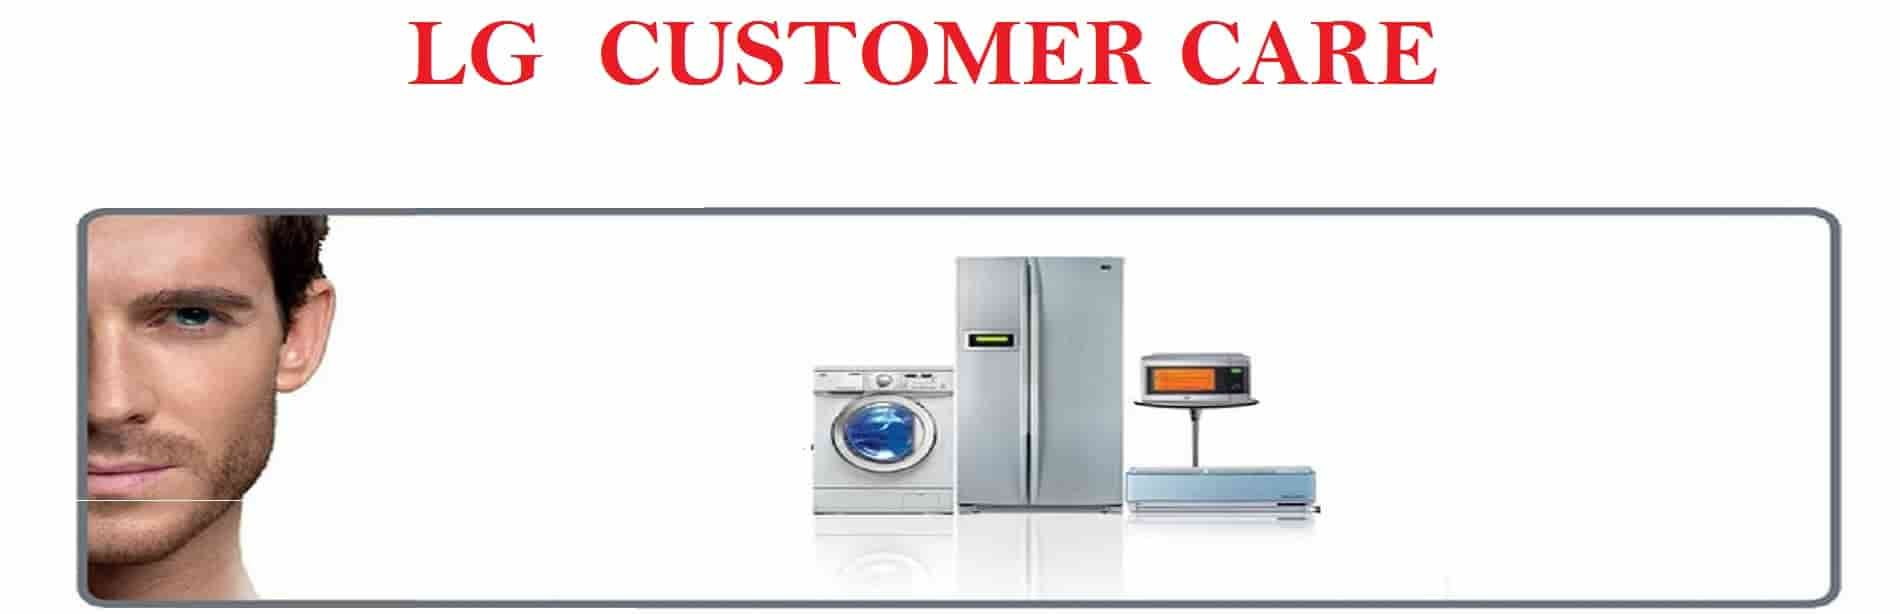 Lg Refrigerator Washing Machine Microwave Customer Care In Delhi Lg Washing Machines Washing Machine Repair Appliance Repair Service